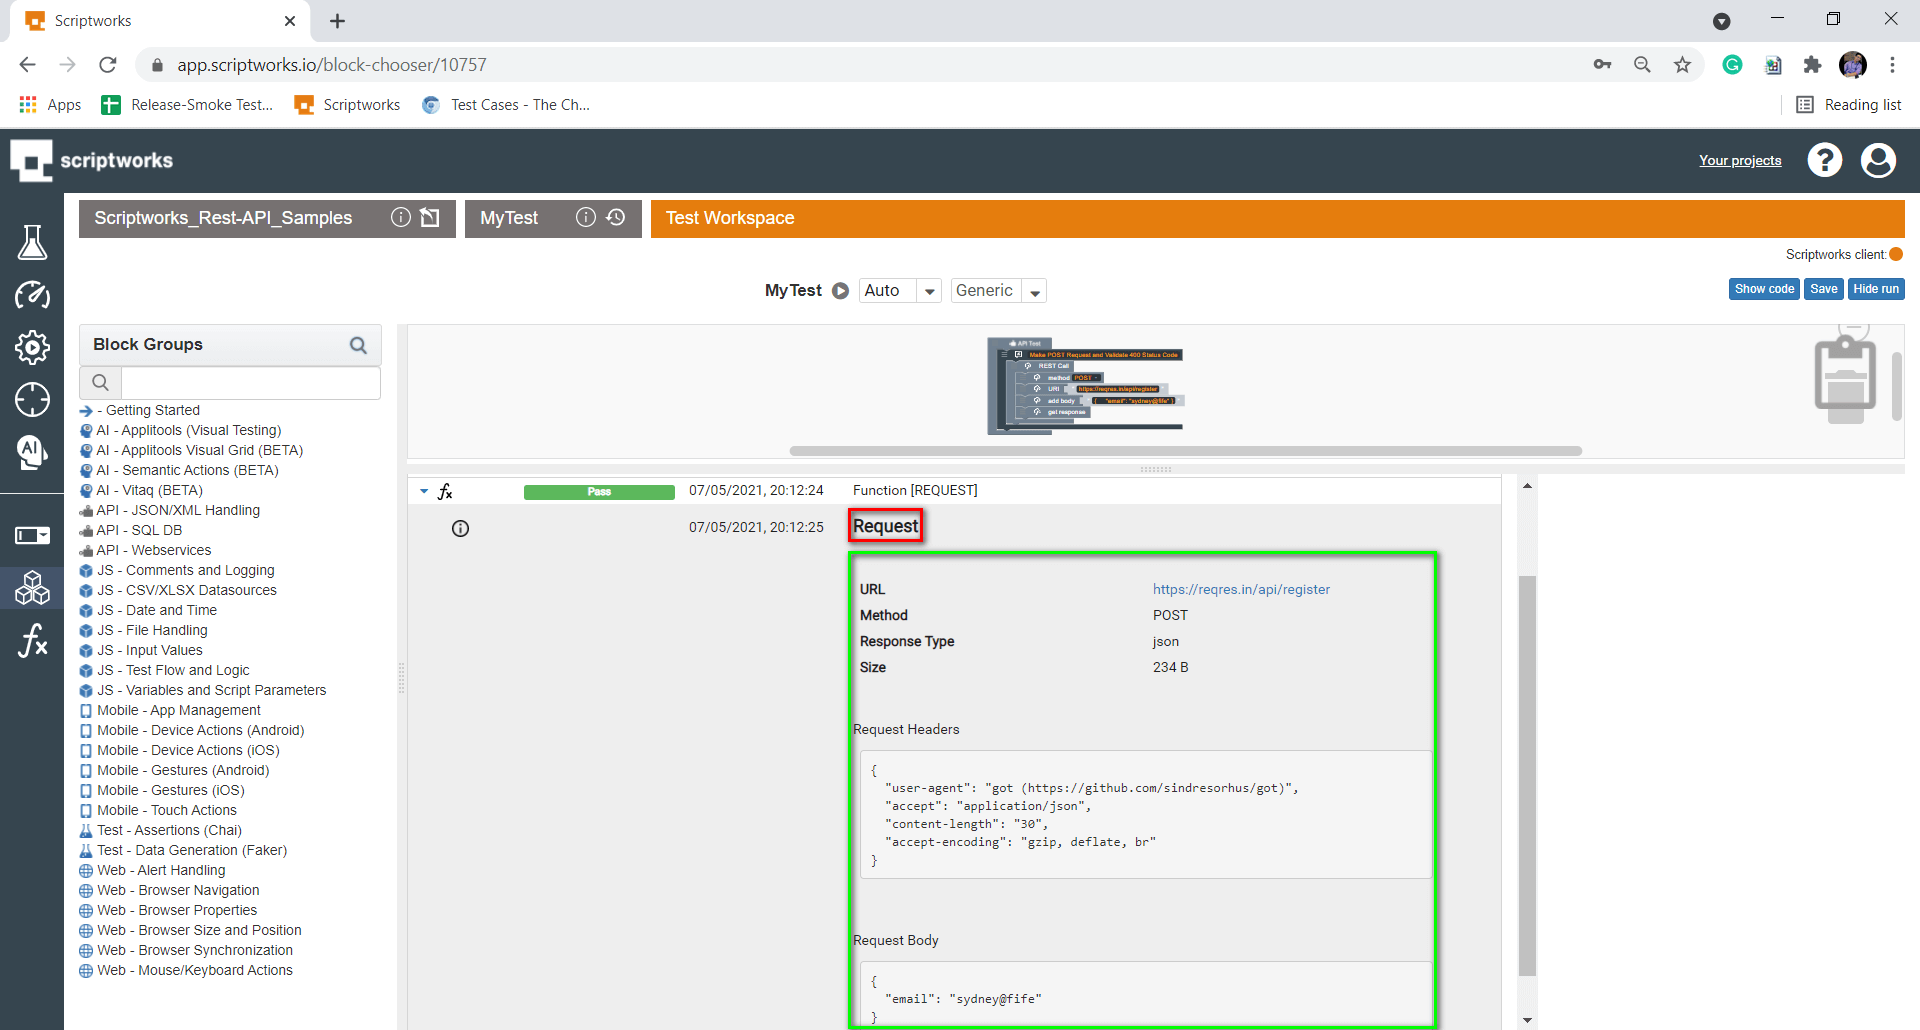 Request Details with Response Headers